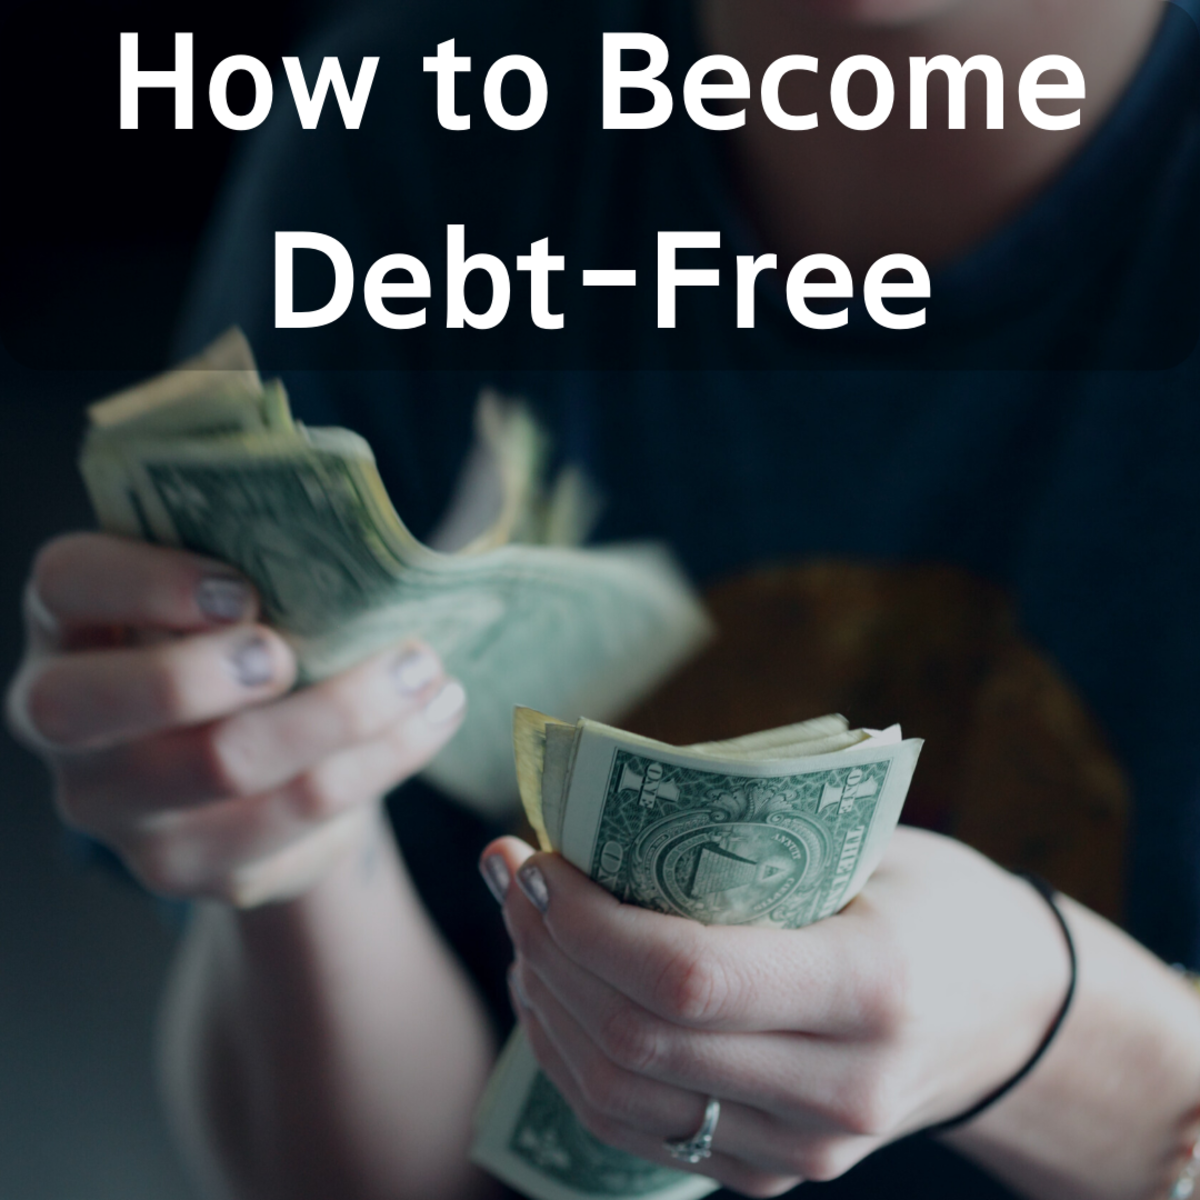 Follow these steps and you too will be able to rid yourself of your debt.